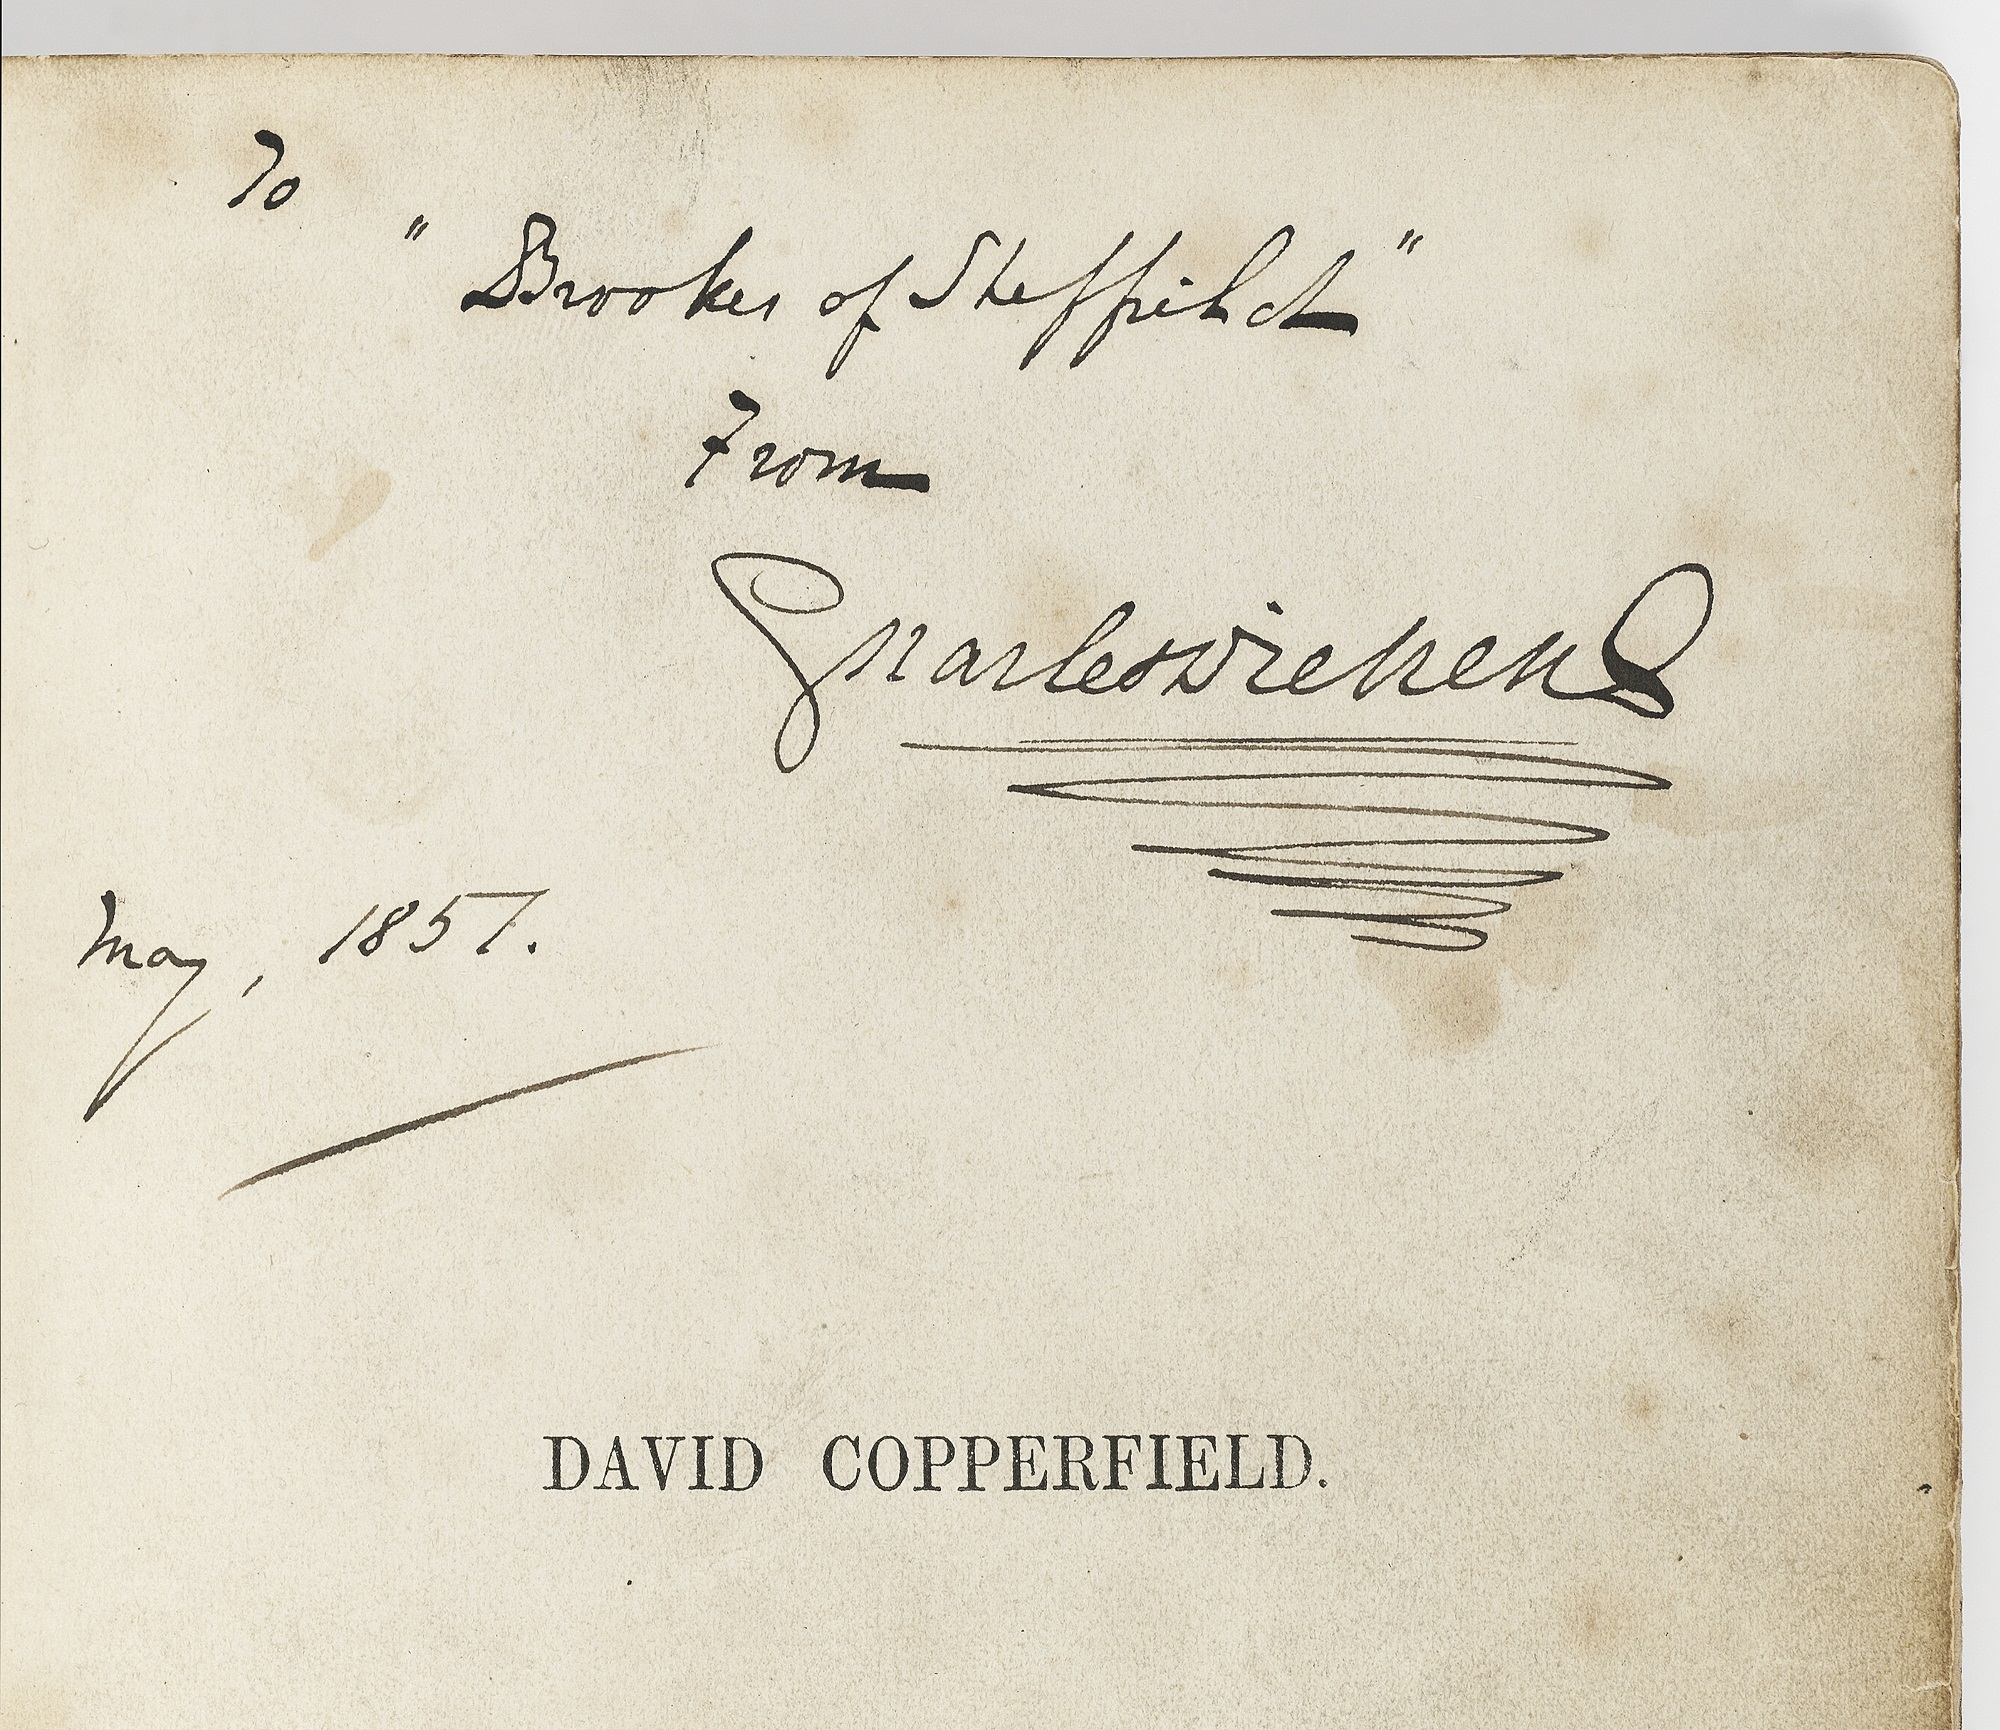 david copperfield signed and presented by dickens at christie s david copperfield signed and presented by dickens at christie s